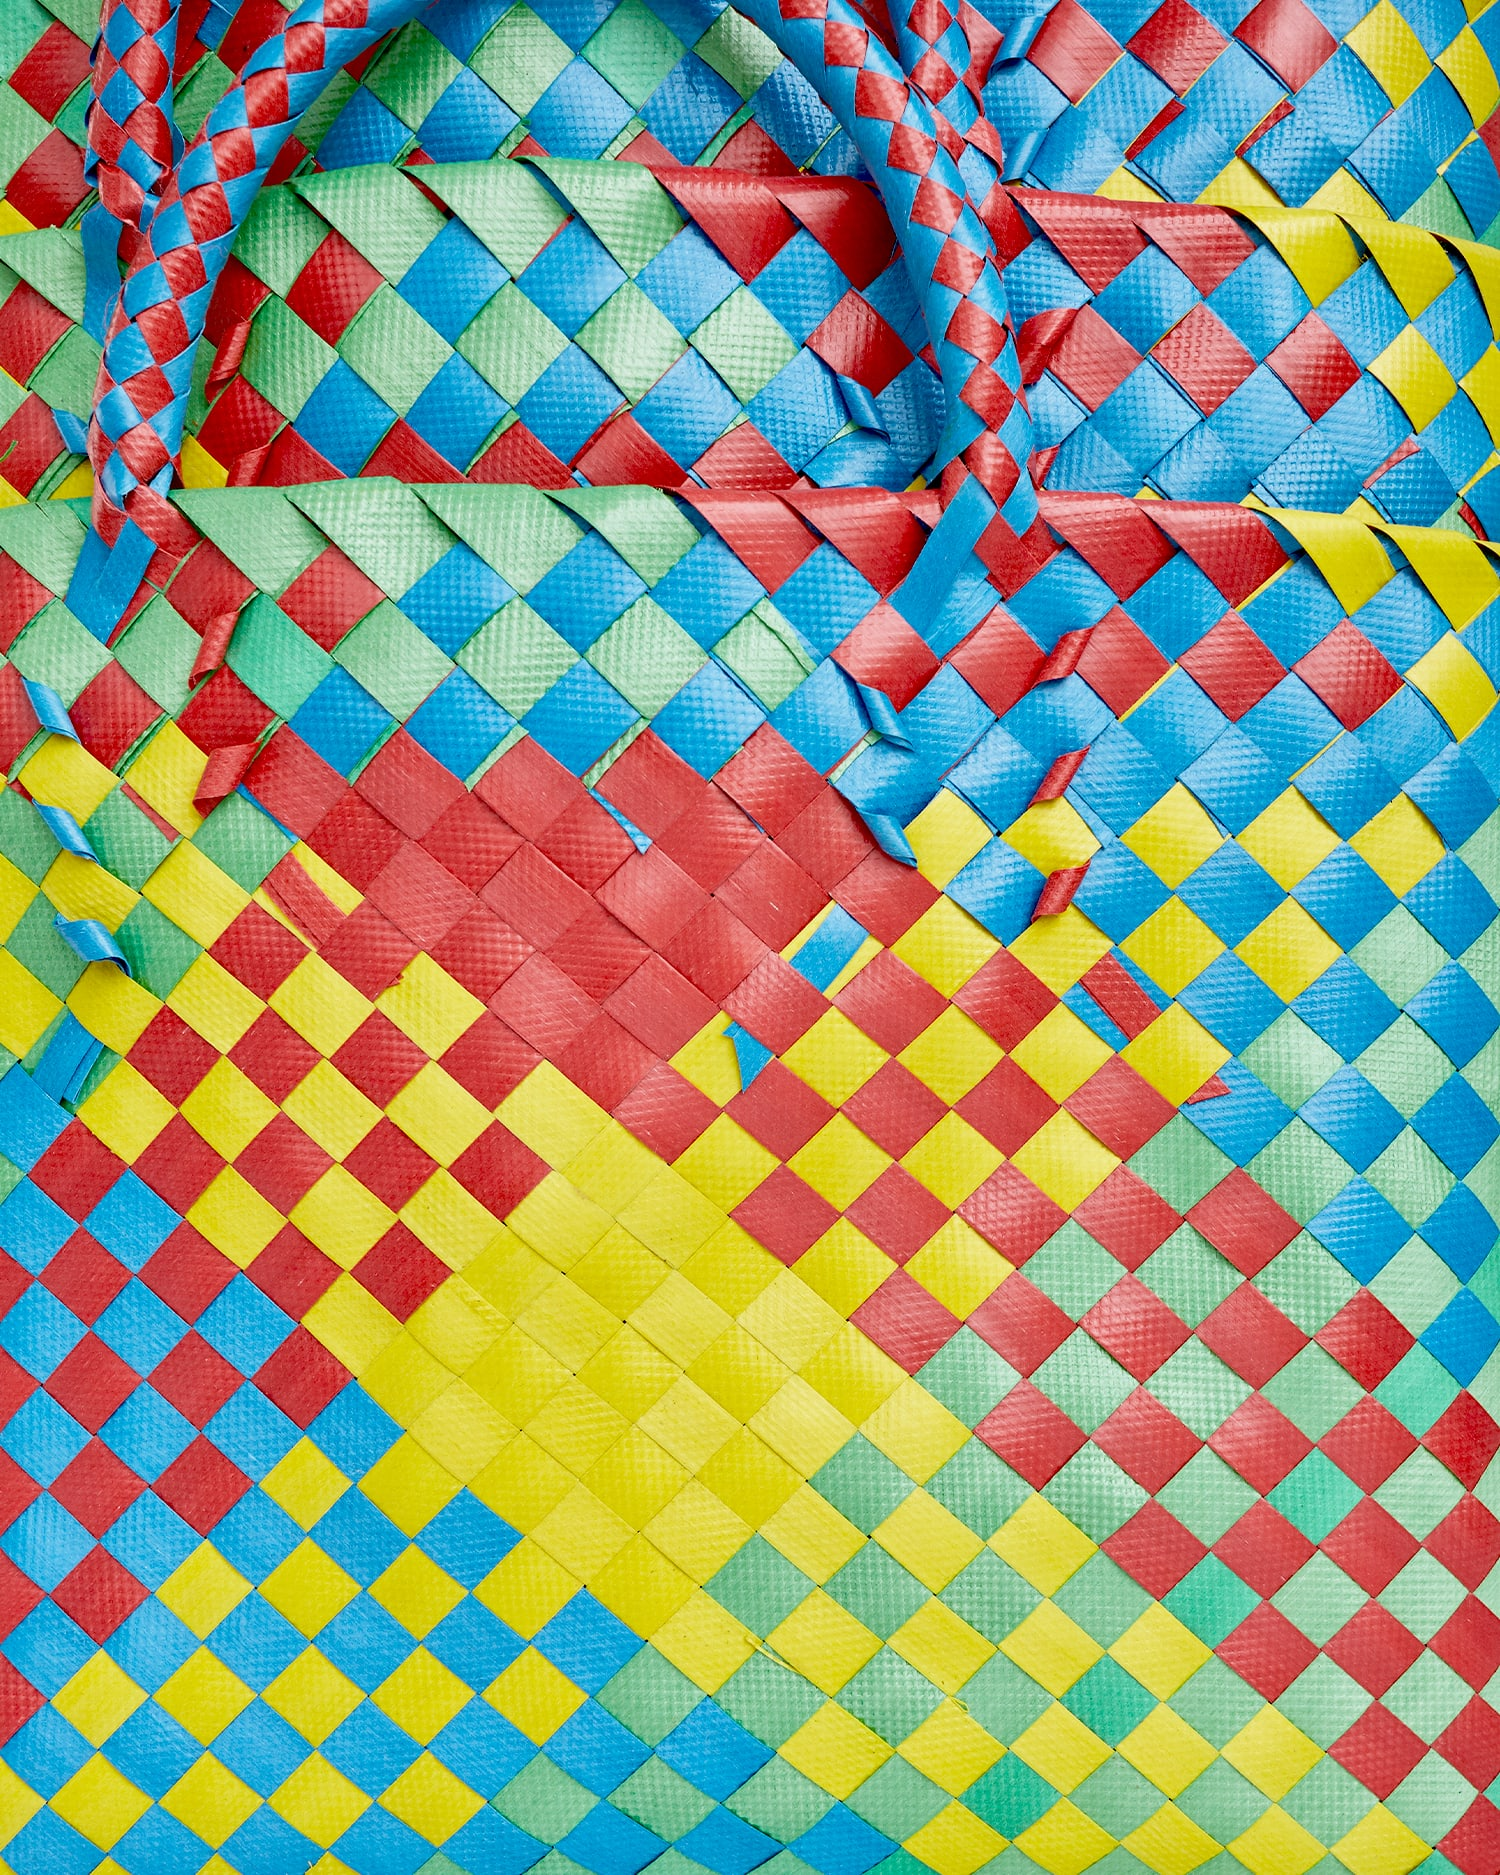 Shop Market Bags in Colorful Basketweave Patterns